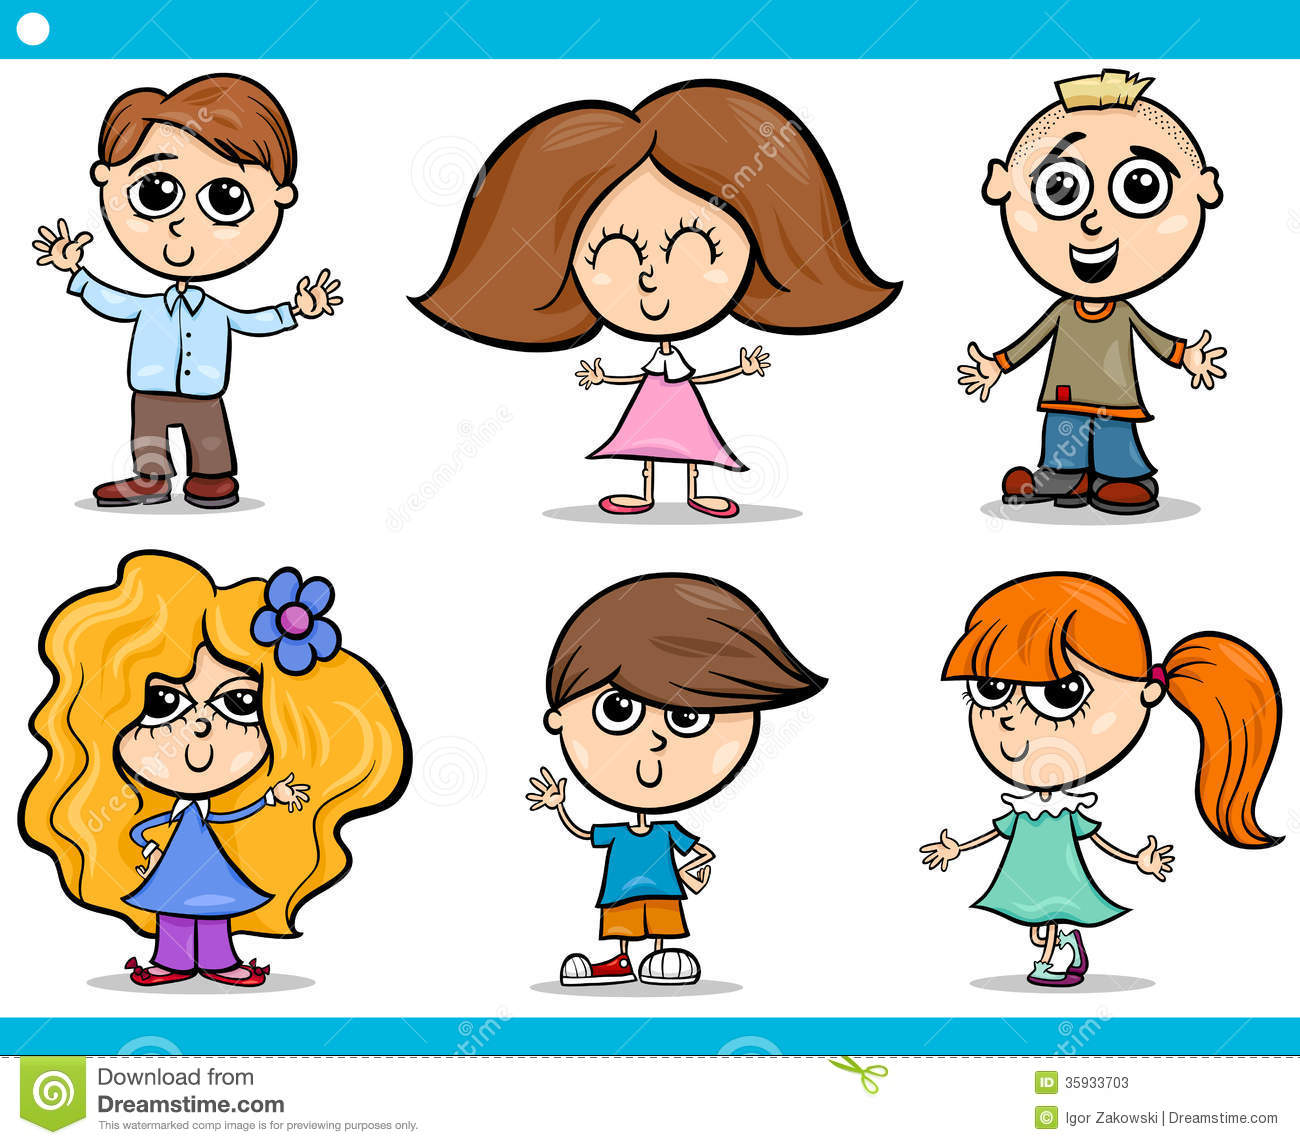 Cartoon Illustration of Cute Little Boys and Girls Children Characters ...